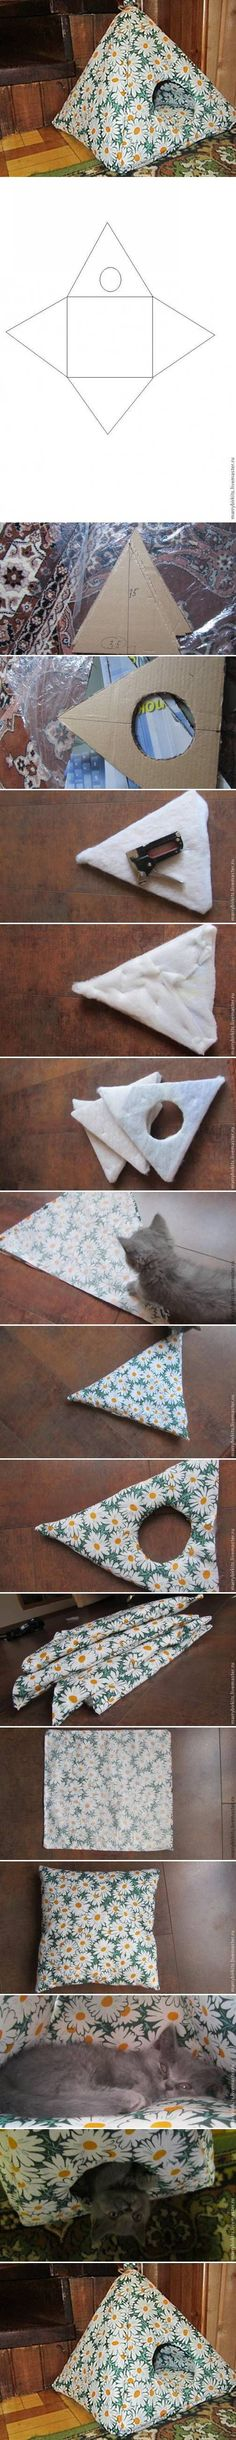 DIY House for Cat DIY Projects | UsefulDIY.com